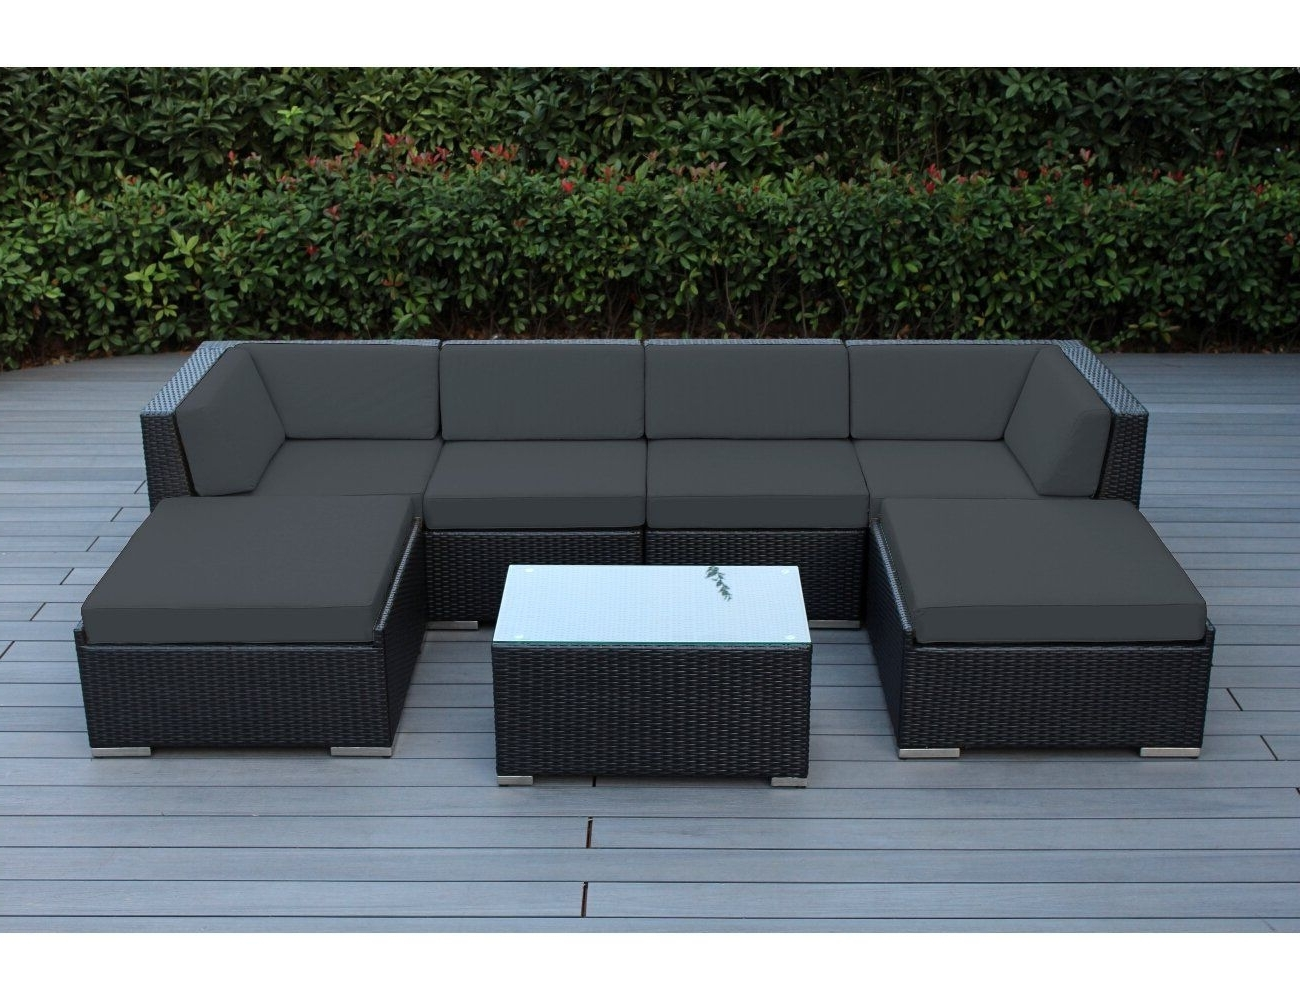 Famous Conversation Patio Sets With Outdoor Sectionals Regarding Ohana 7 Piece Outdoor Patio Furniture Sectional Conversation Set (View 9 of 20)